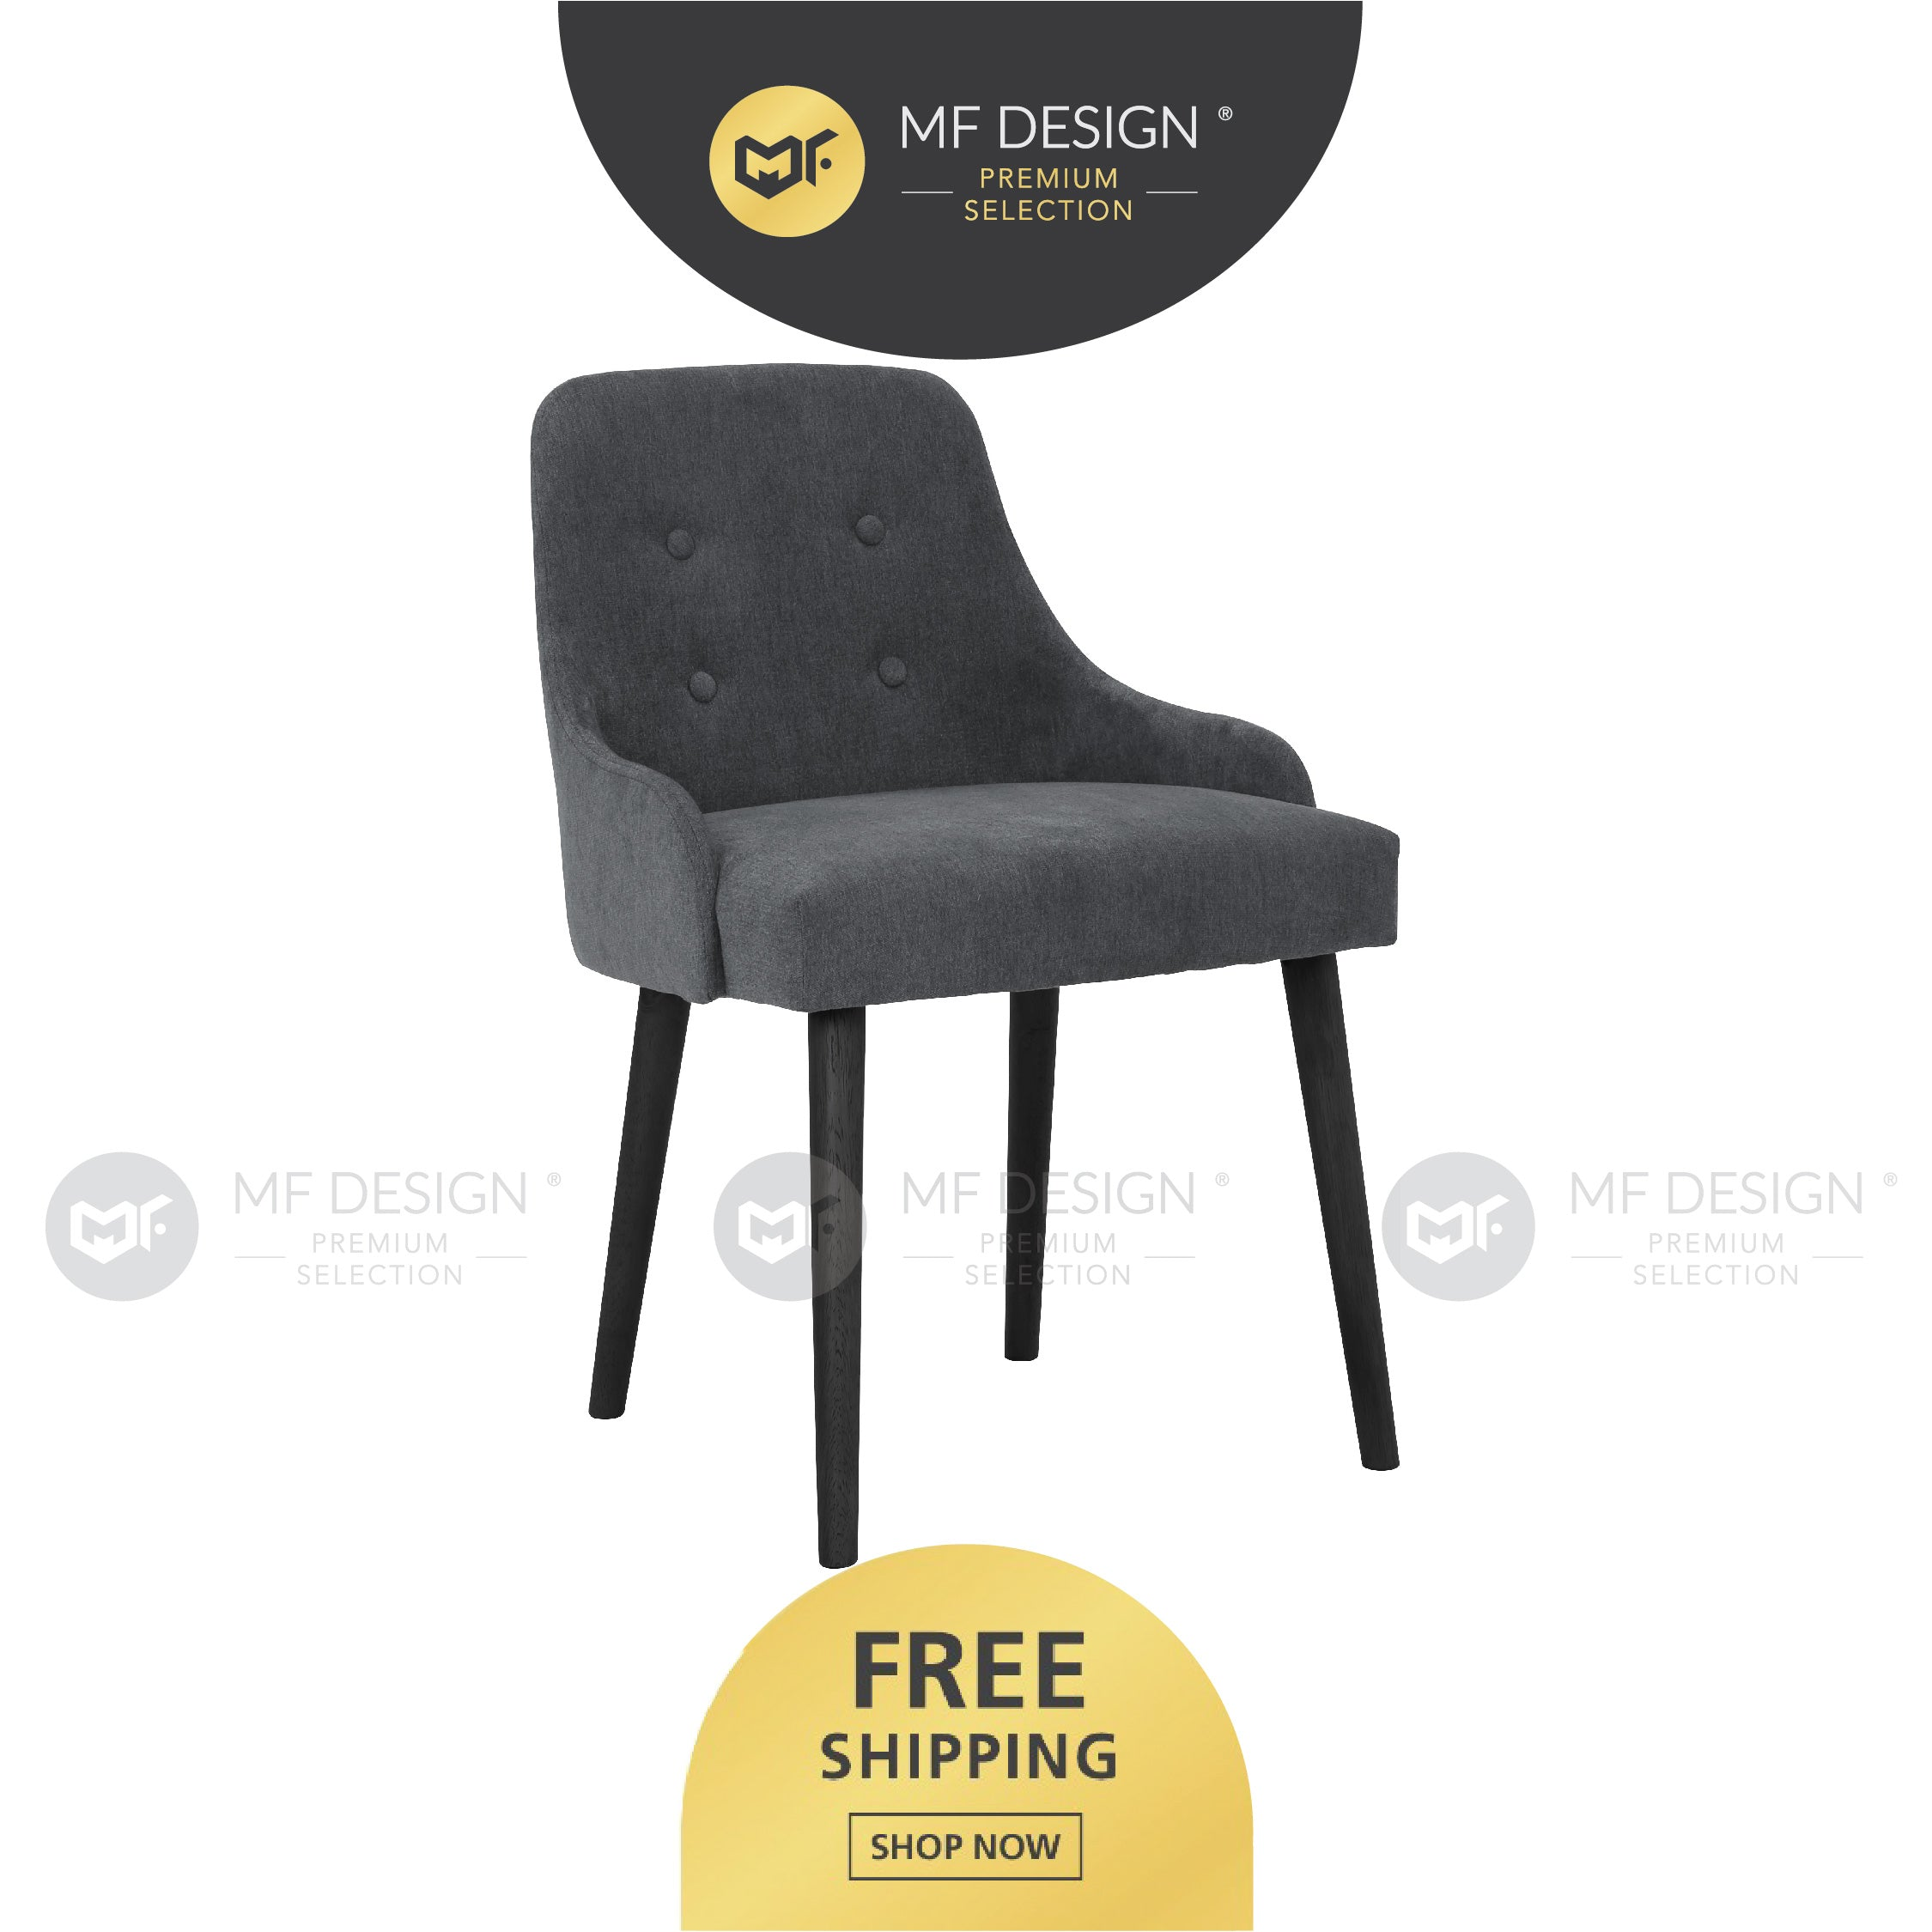 MFD Premium Charlotte Dining Chair / kerusi / chair